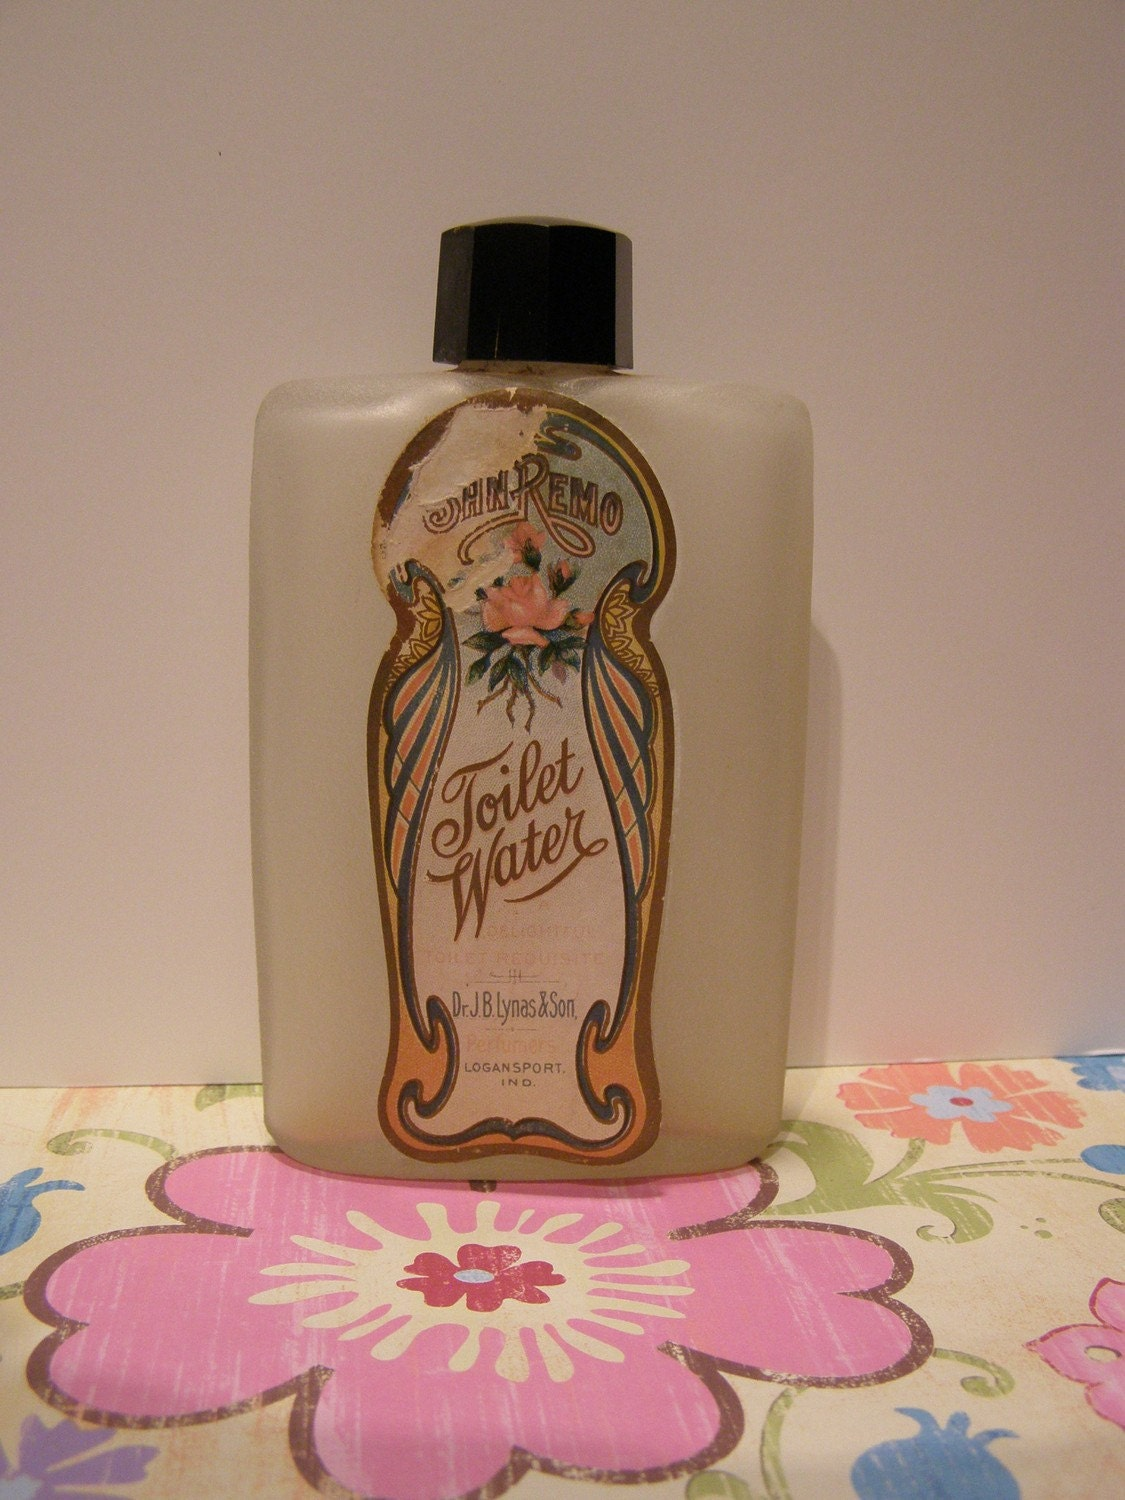 Perfumes & Cosmetics: Perfumes and toilet waters